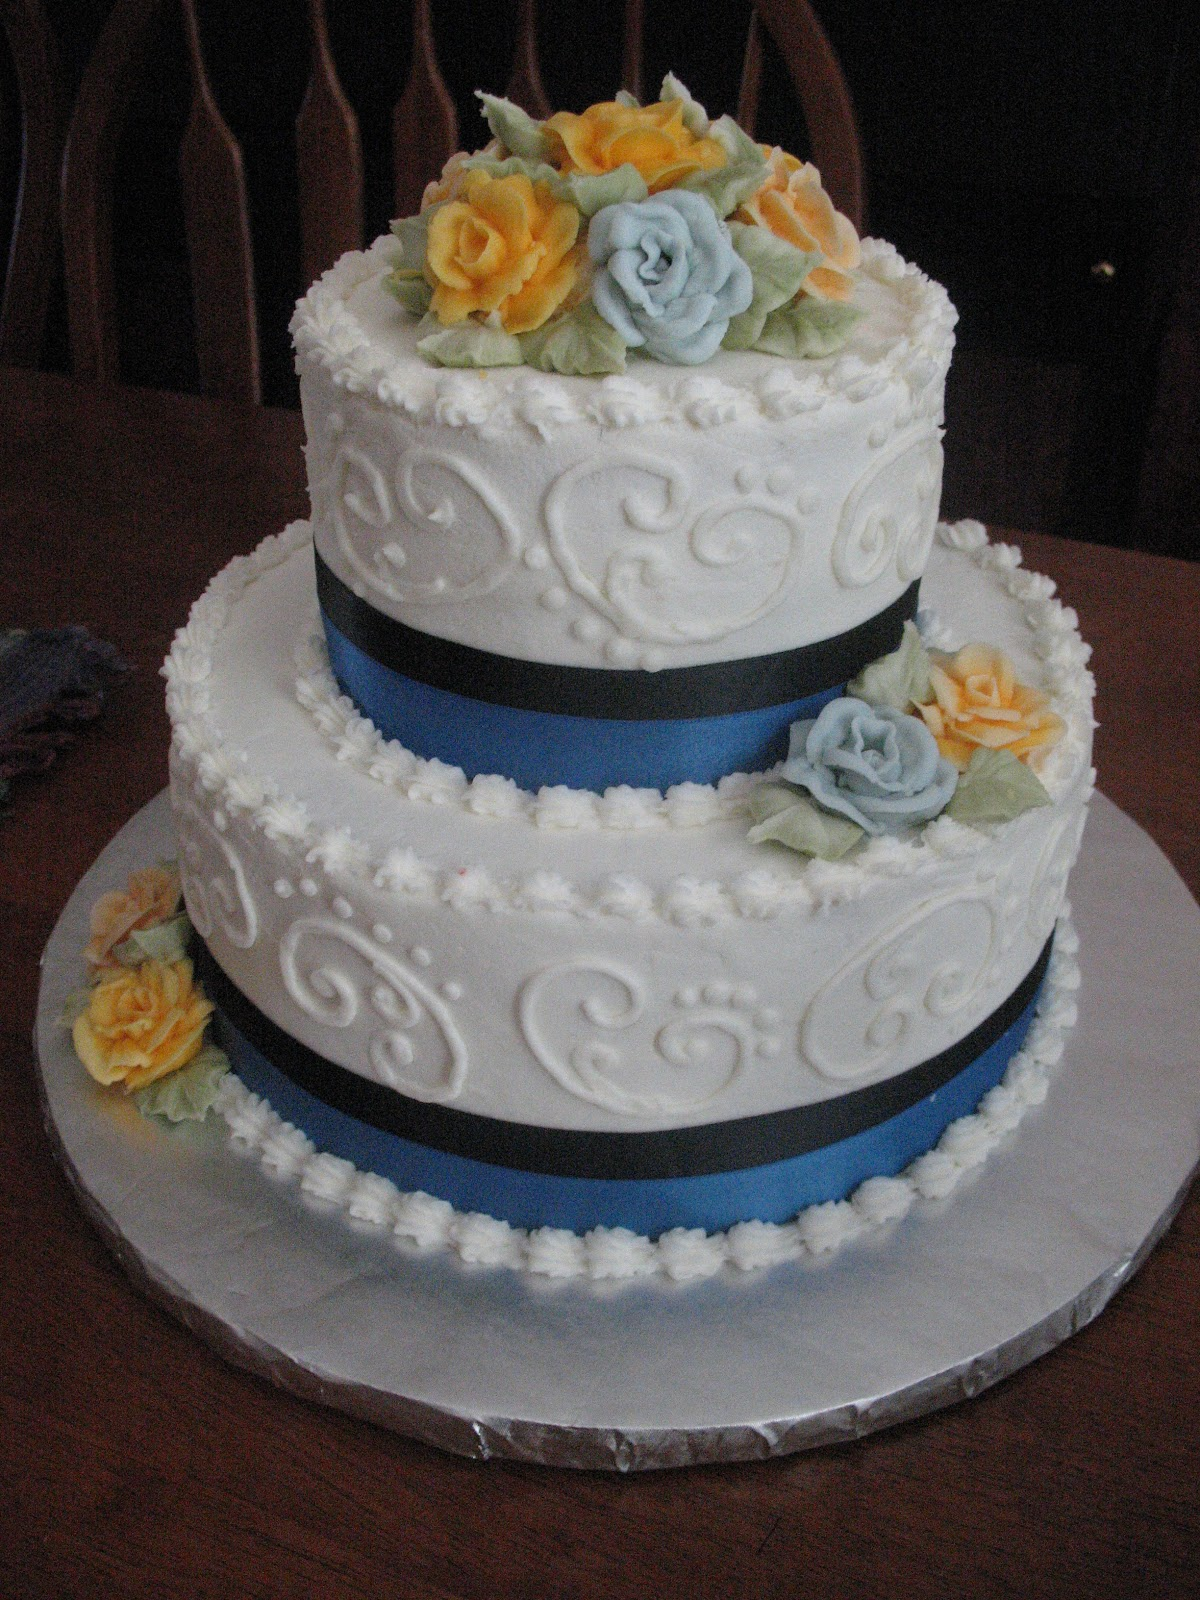 Wedding Cakes By Mary Ann Blue Navy Blue Anniversary Cake